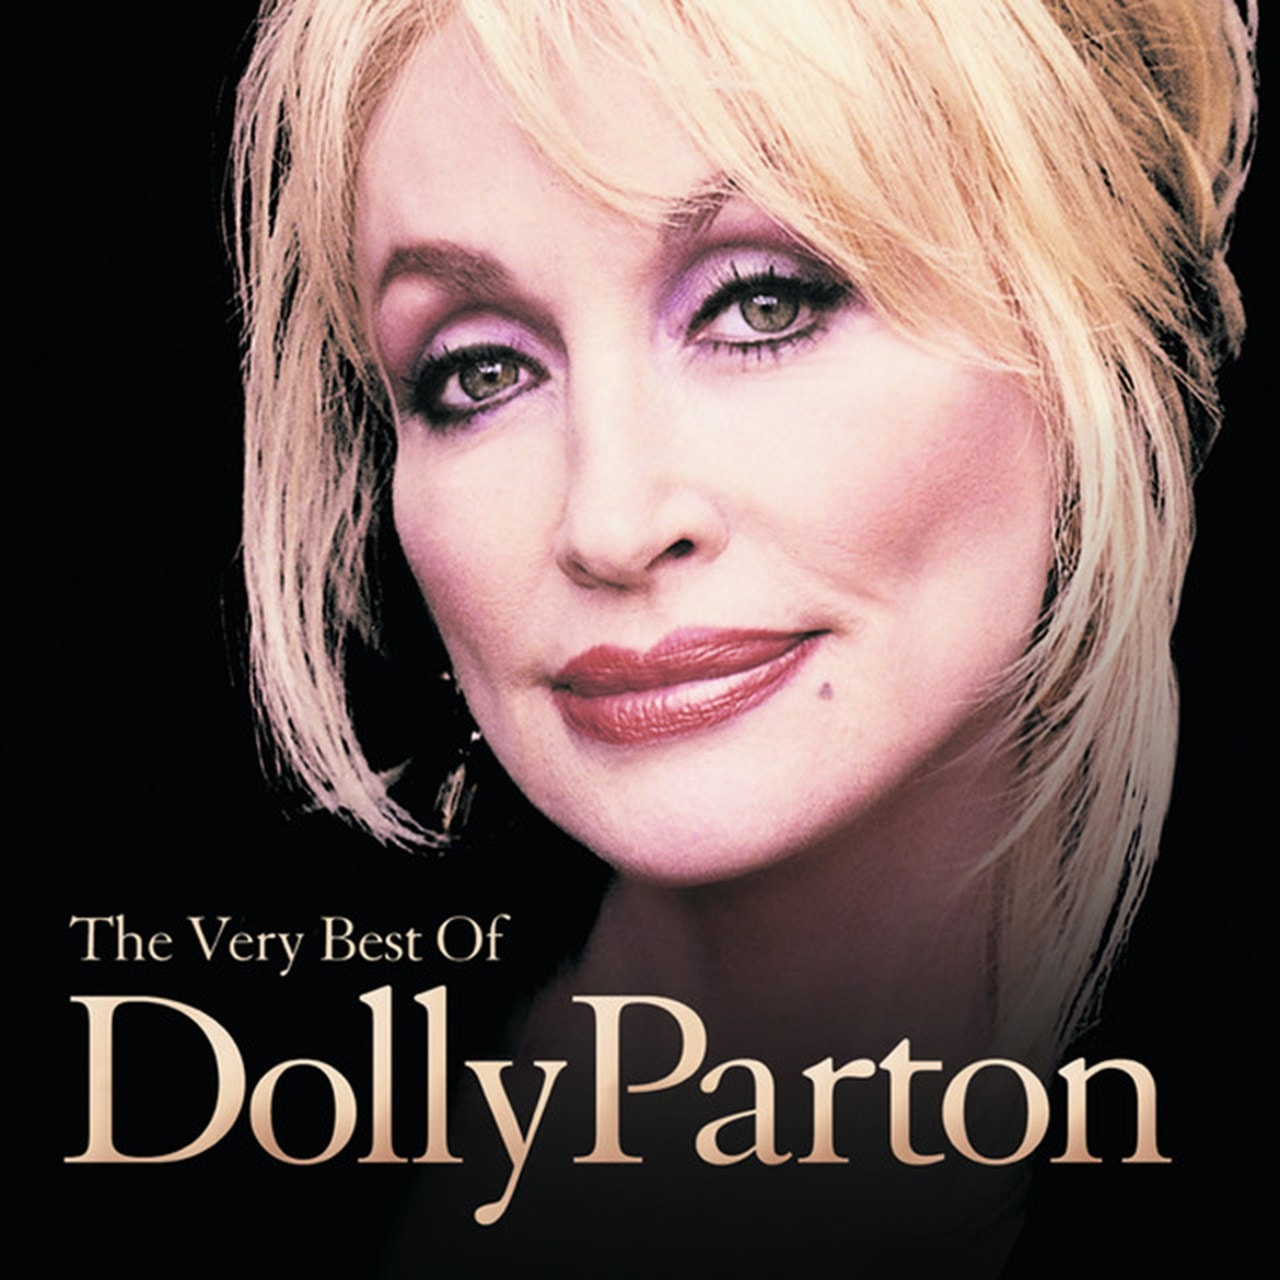 The Very Best of Dolly Parton - 1